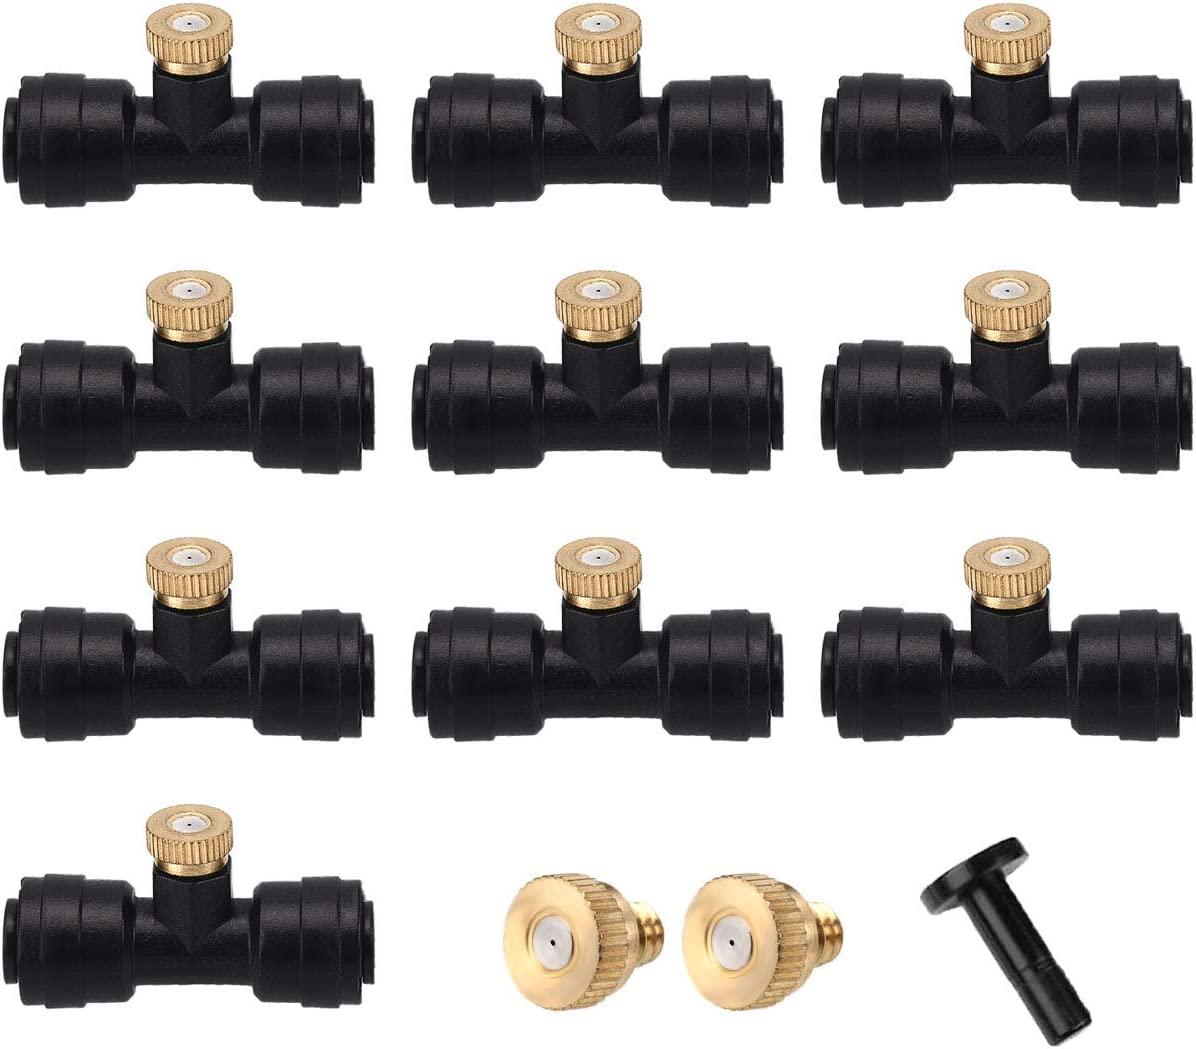 #NA Misting Cooling System, (1/4 Inch) Misting Nozzle Tees and Brass Mist Nozzle Each 10PCS and 1 Plug Outdoor Mister for Patio, Garden, Greenhouse, Lawn,Trampoline for Water Park(Black)